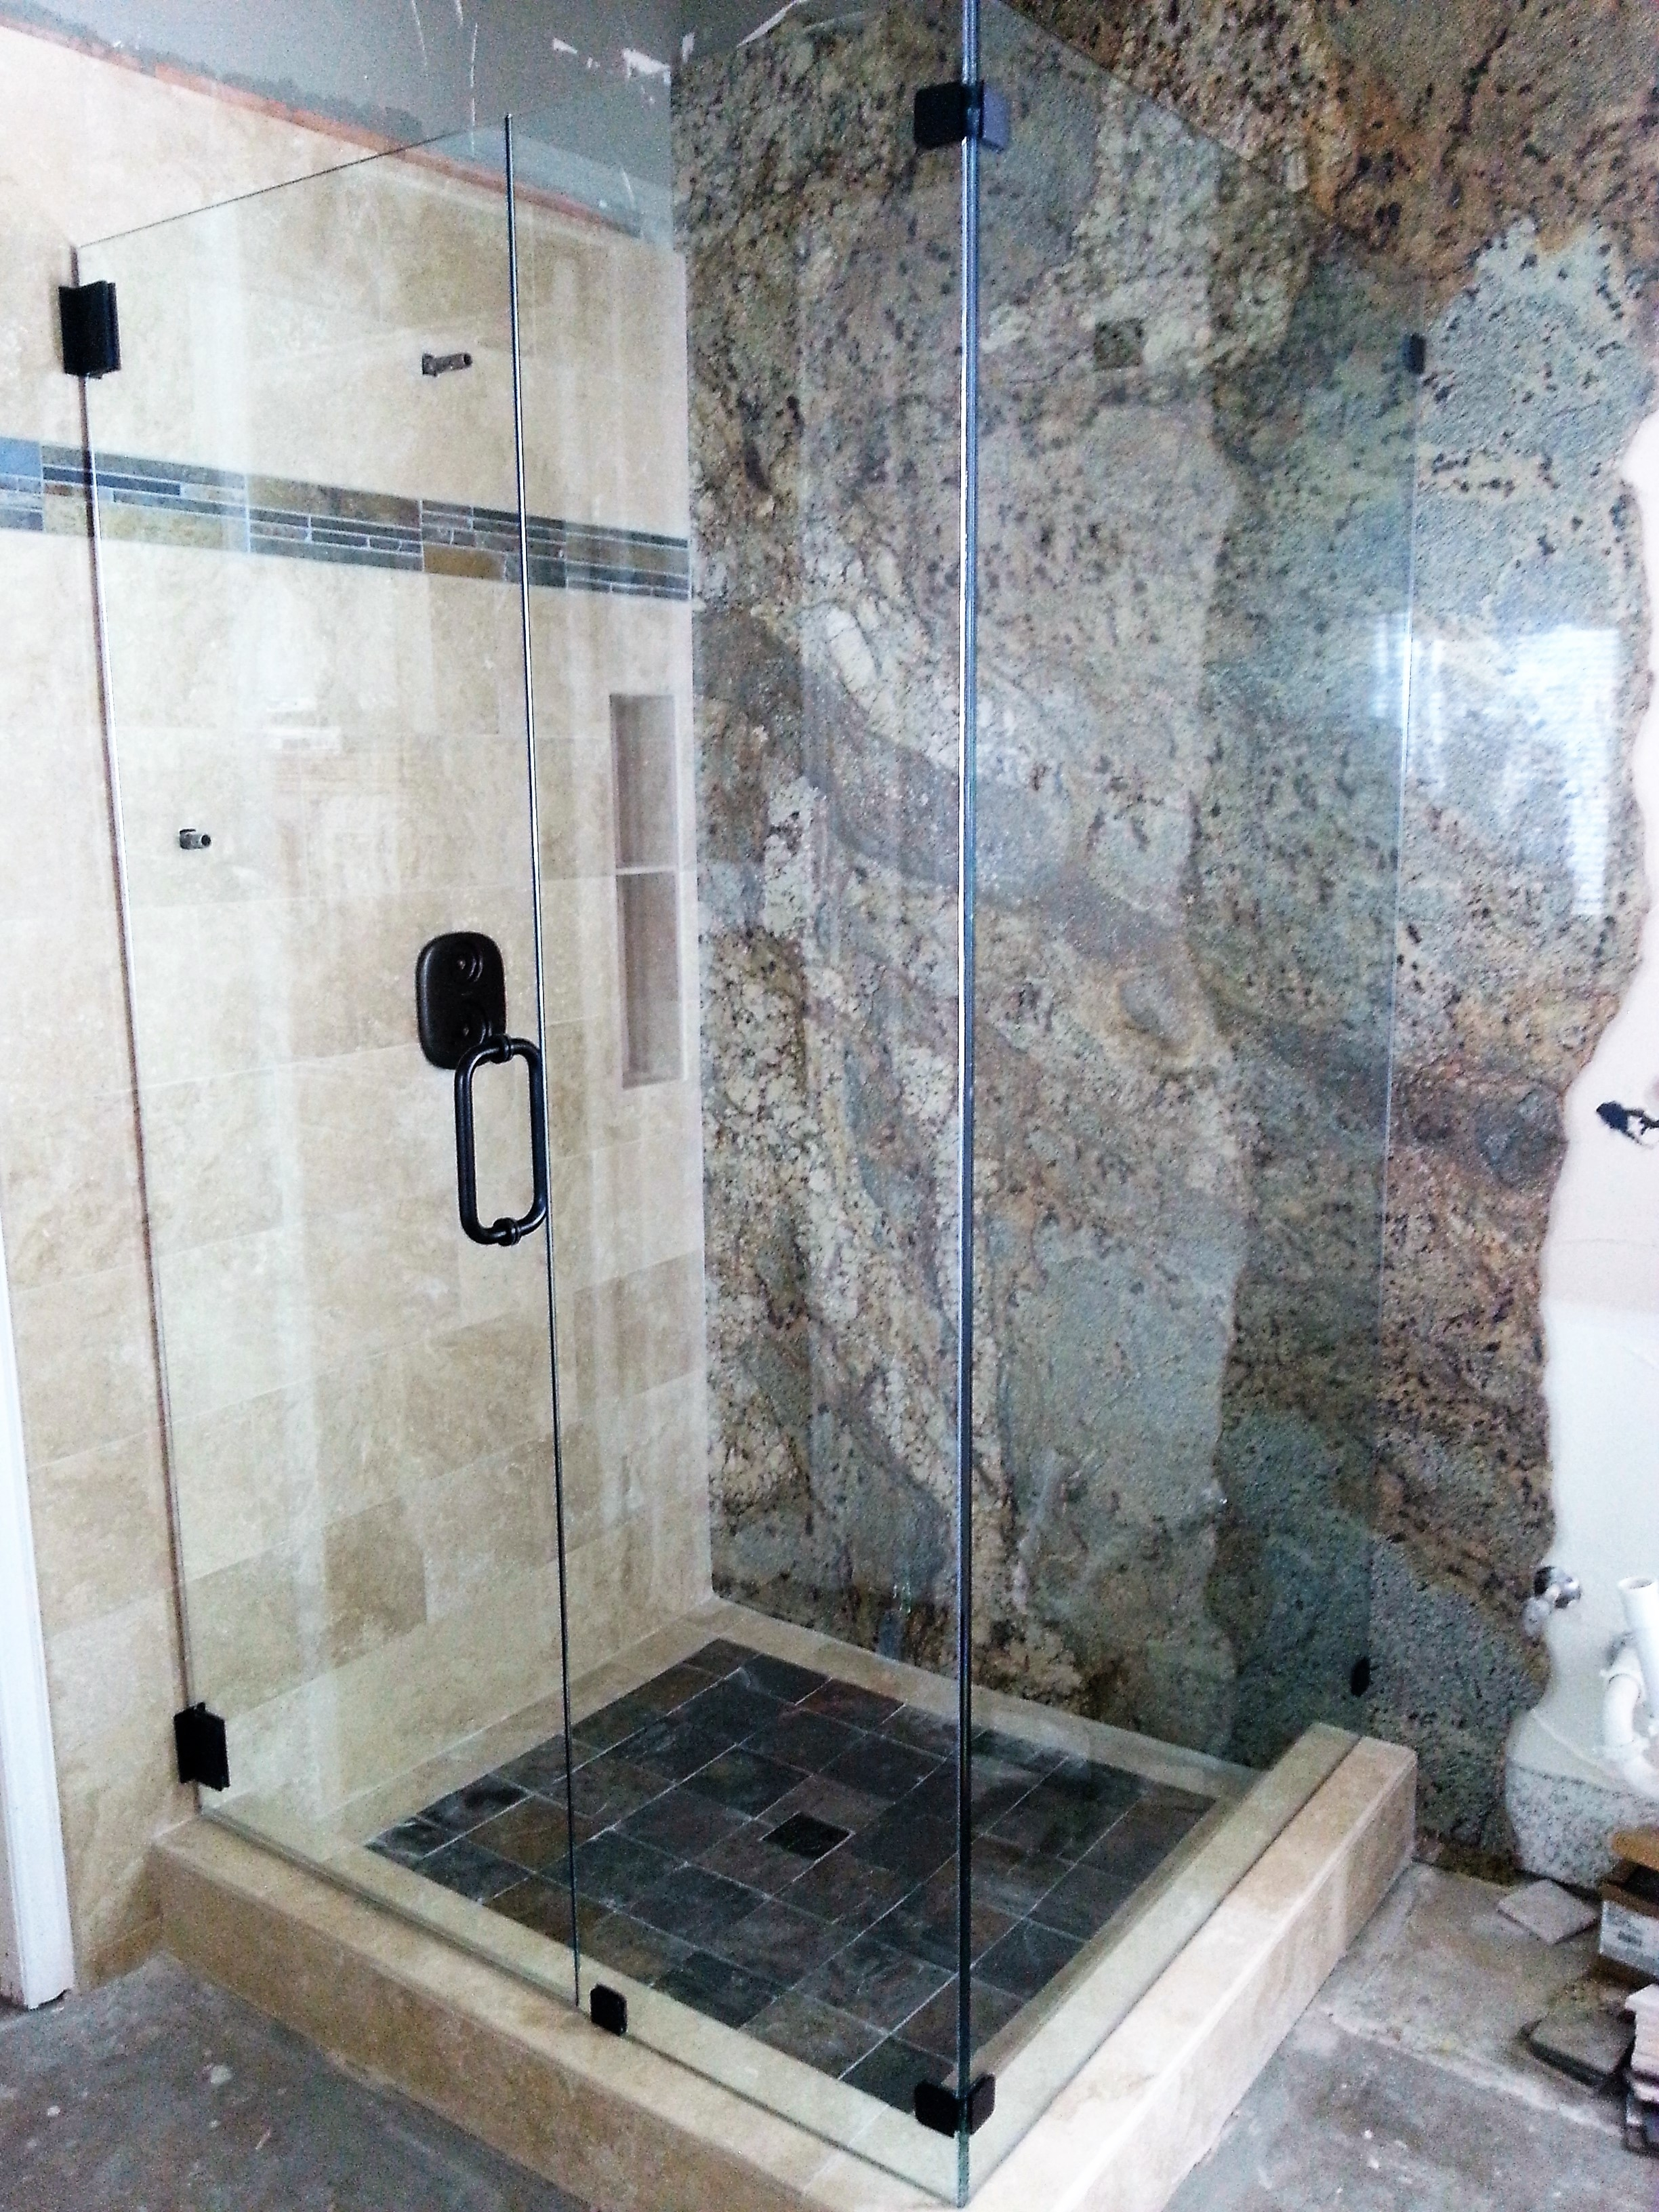 My affordable glass and remodeling in lewisville tx 75057 for Affordable furniture commerce tx